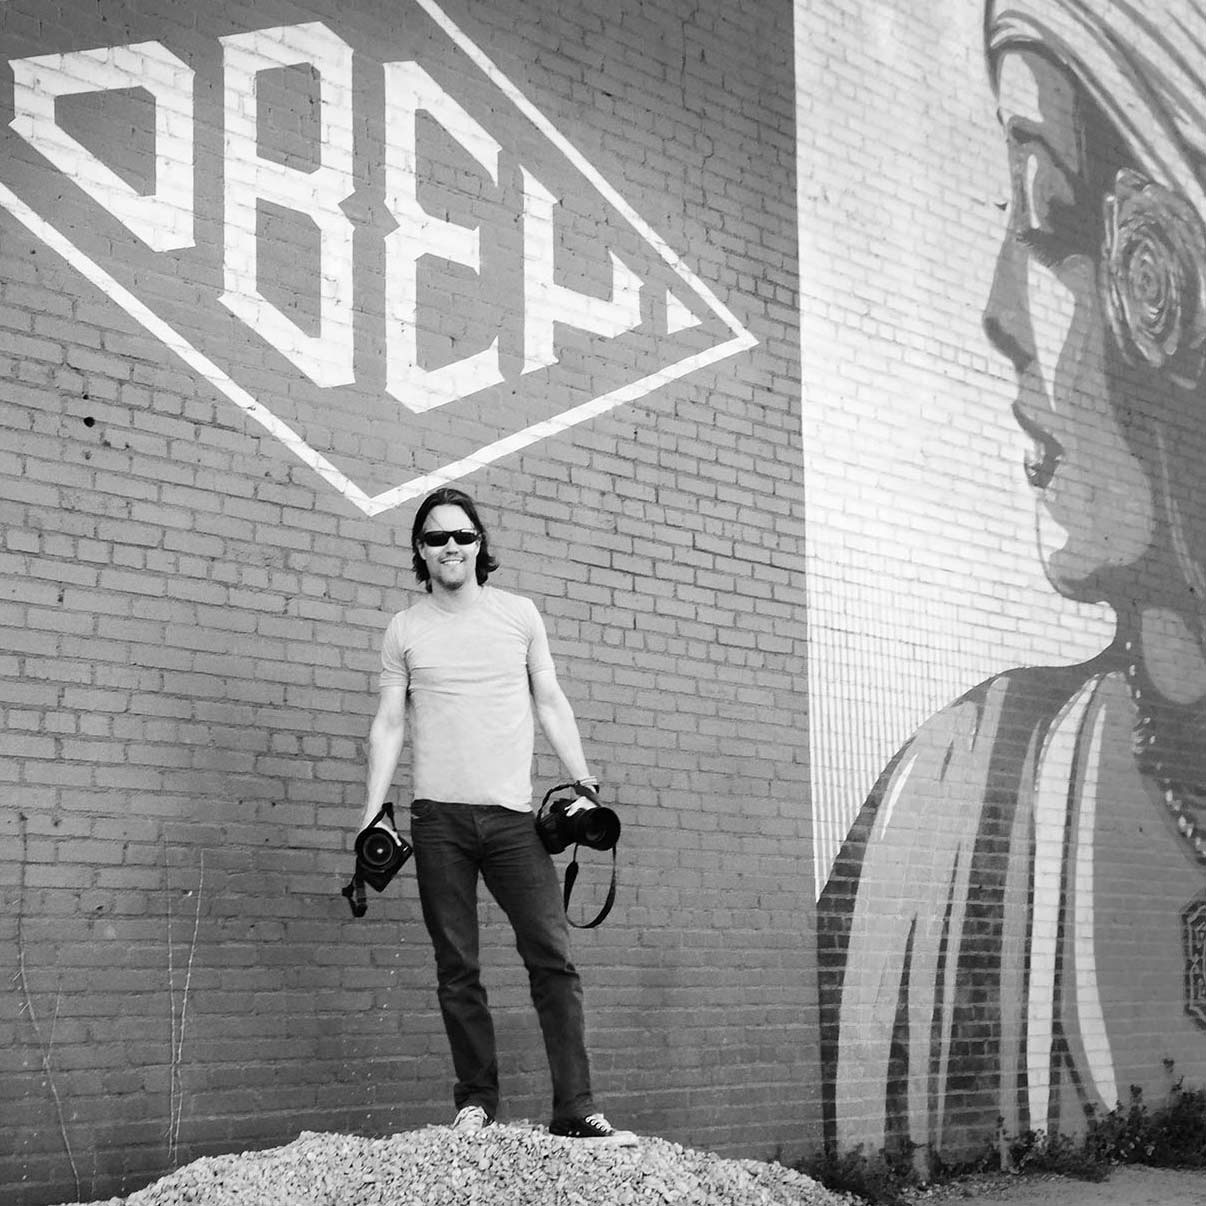 about-Jeremy-Frechette-Portrait-Obey-Graffiti.jpg